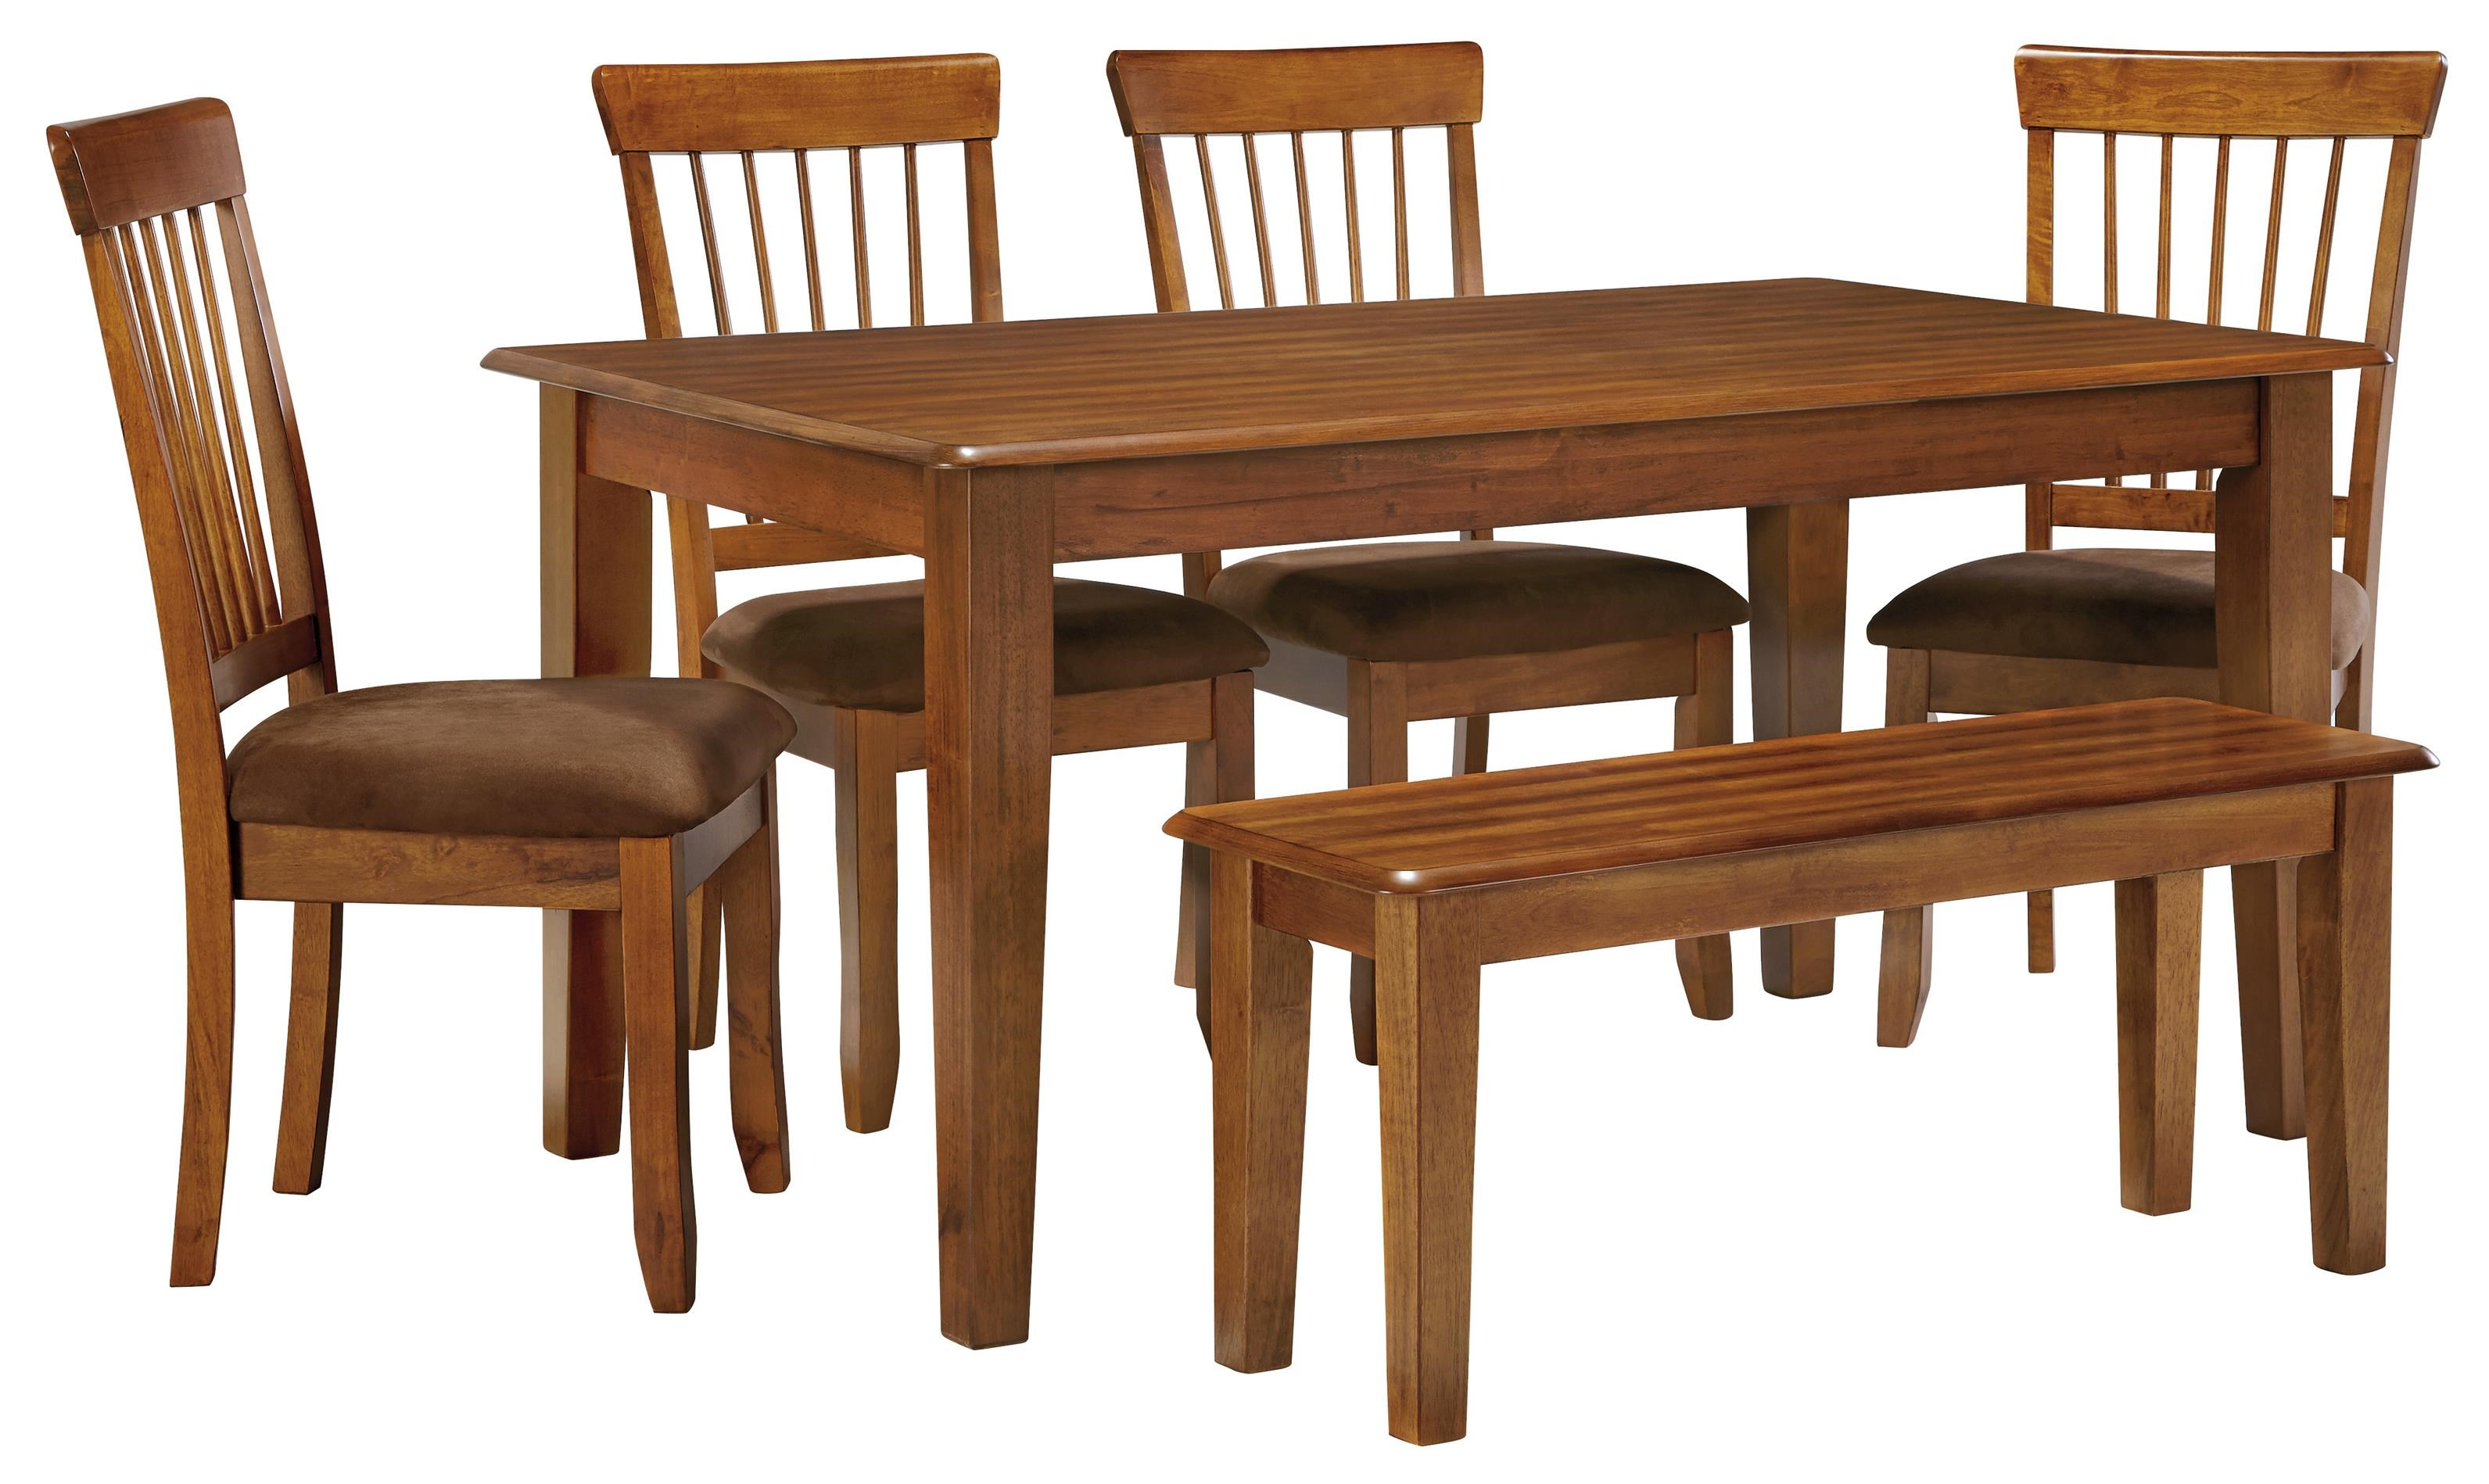 Ashley Furniture Berringer 36 X 60 Table With 4 Chairs U0026 Bench